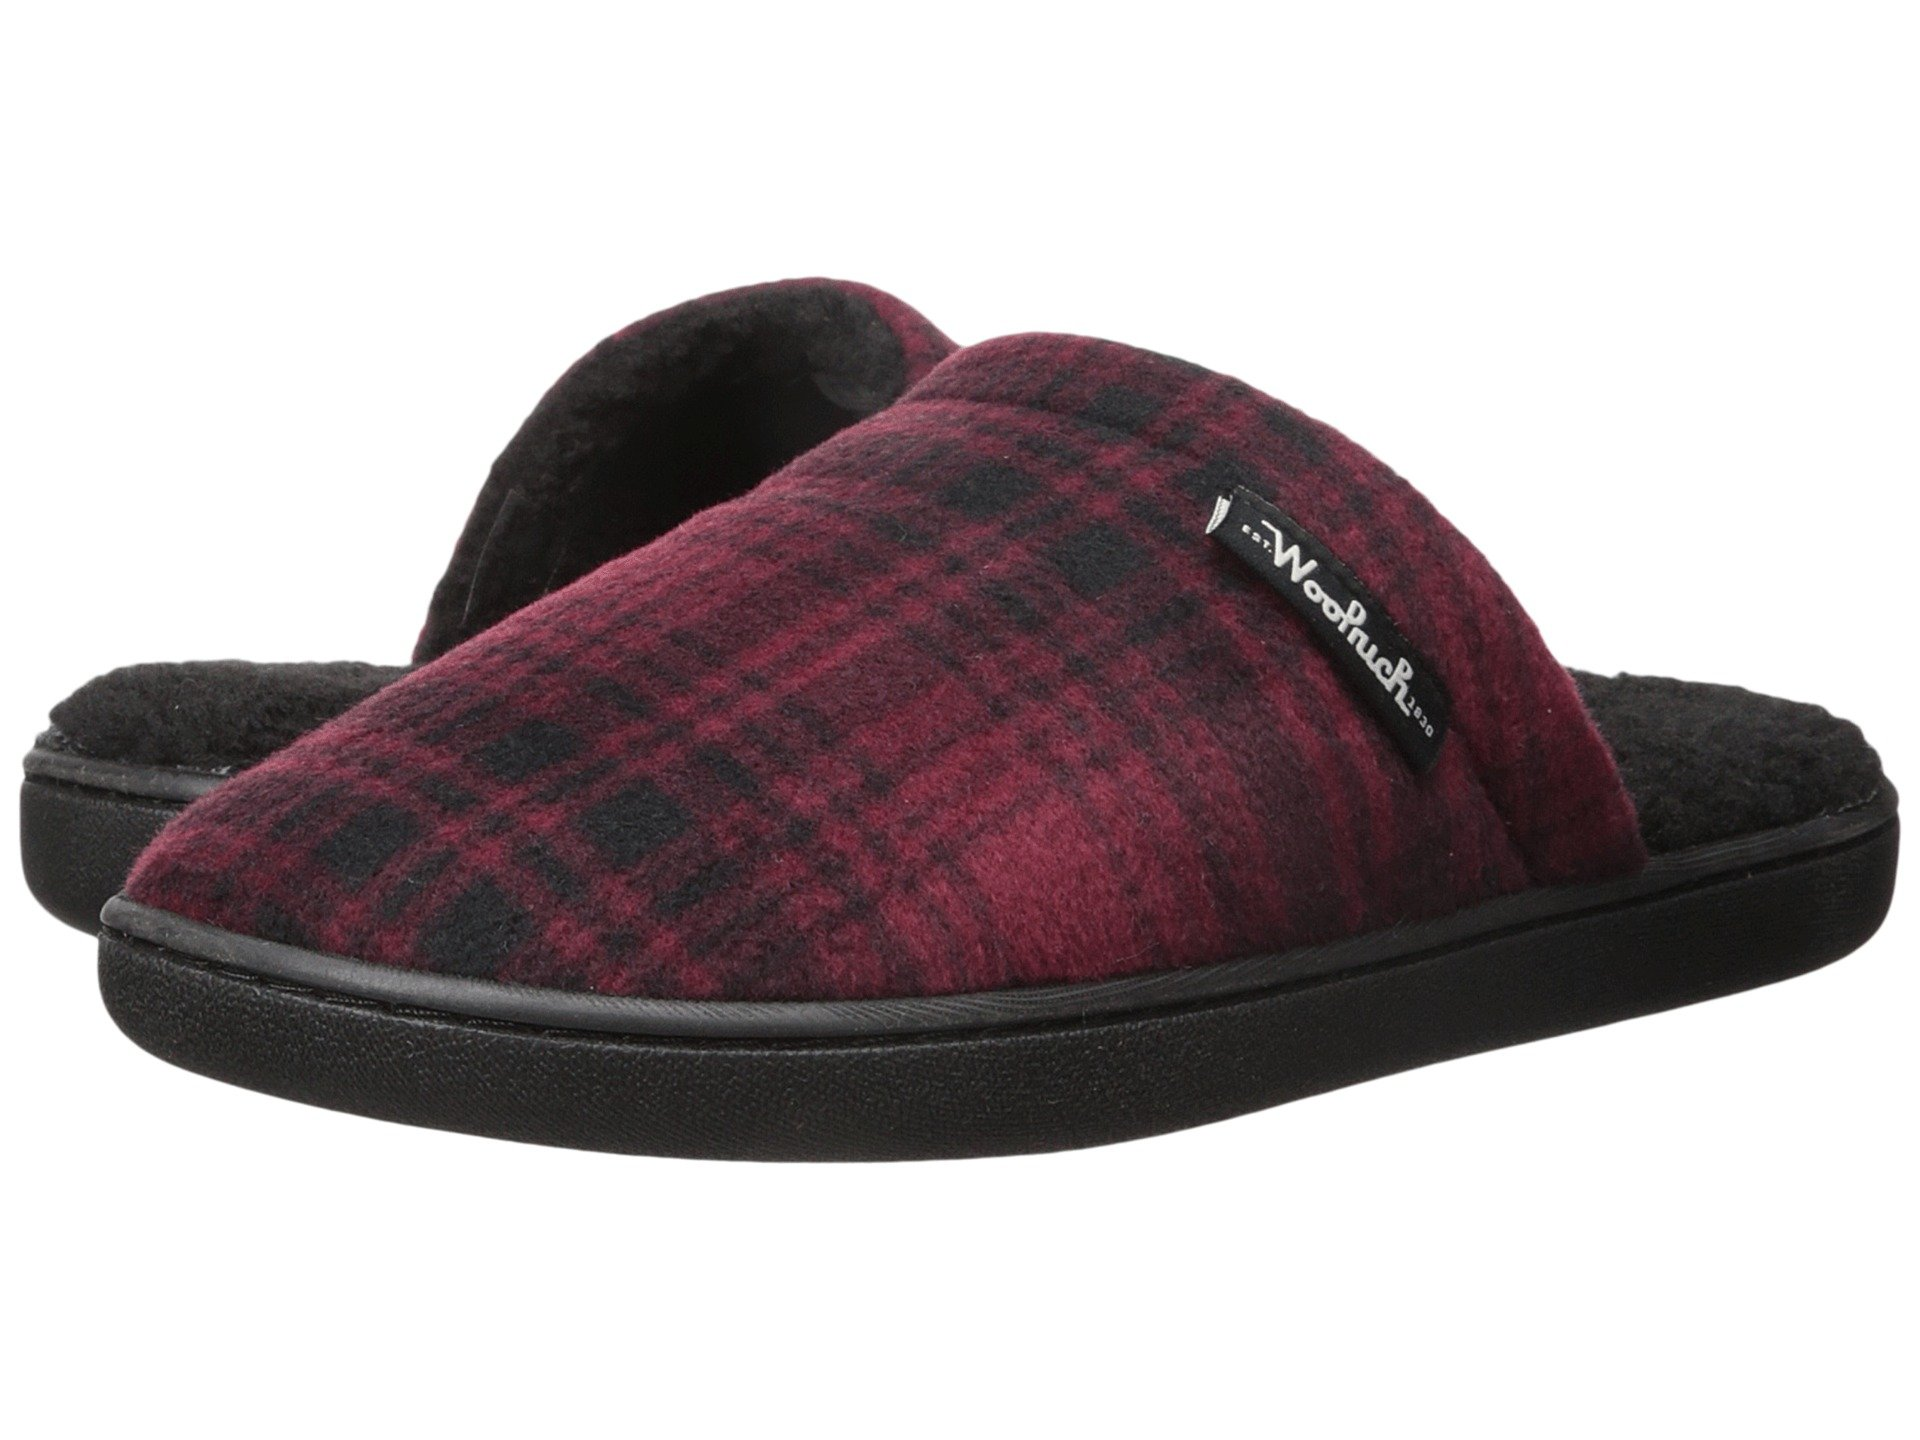 Zapatos de Descanso para Hombre Woolrich Chatham Camp  + Woolrich en VeoyCompro.net